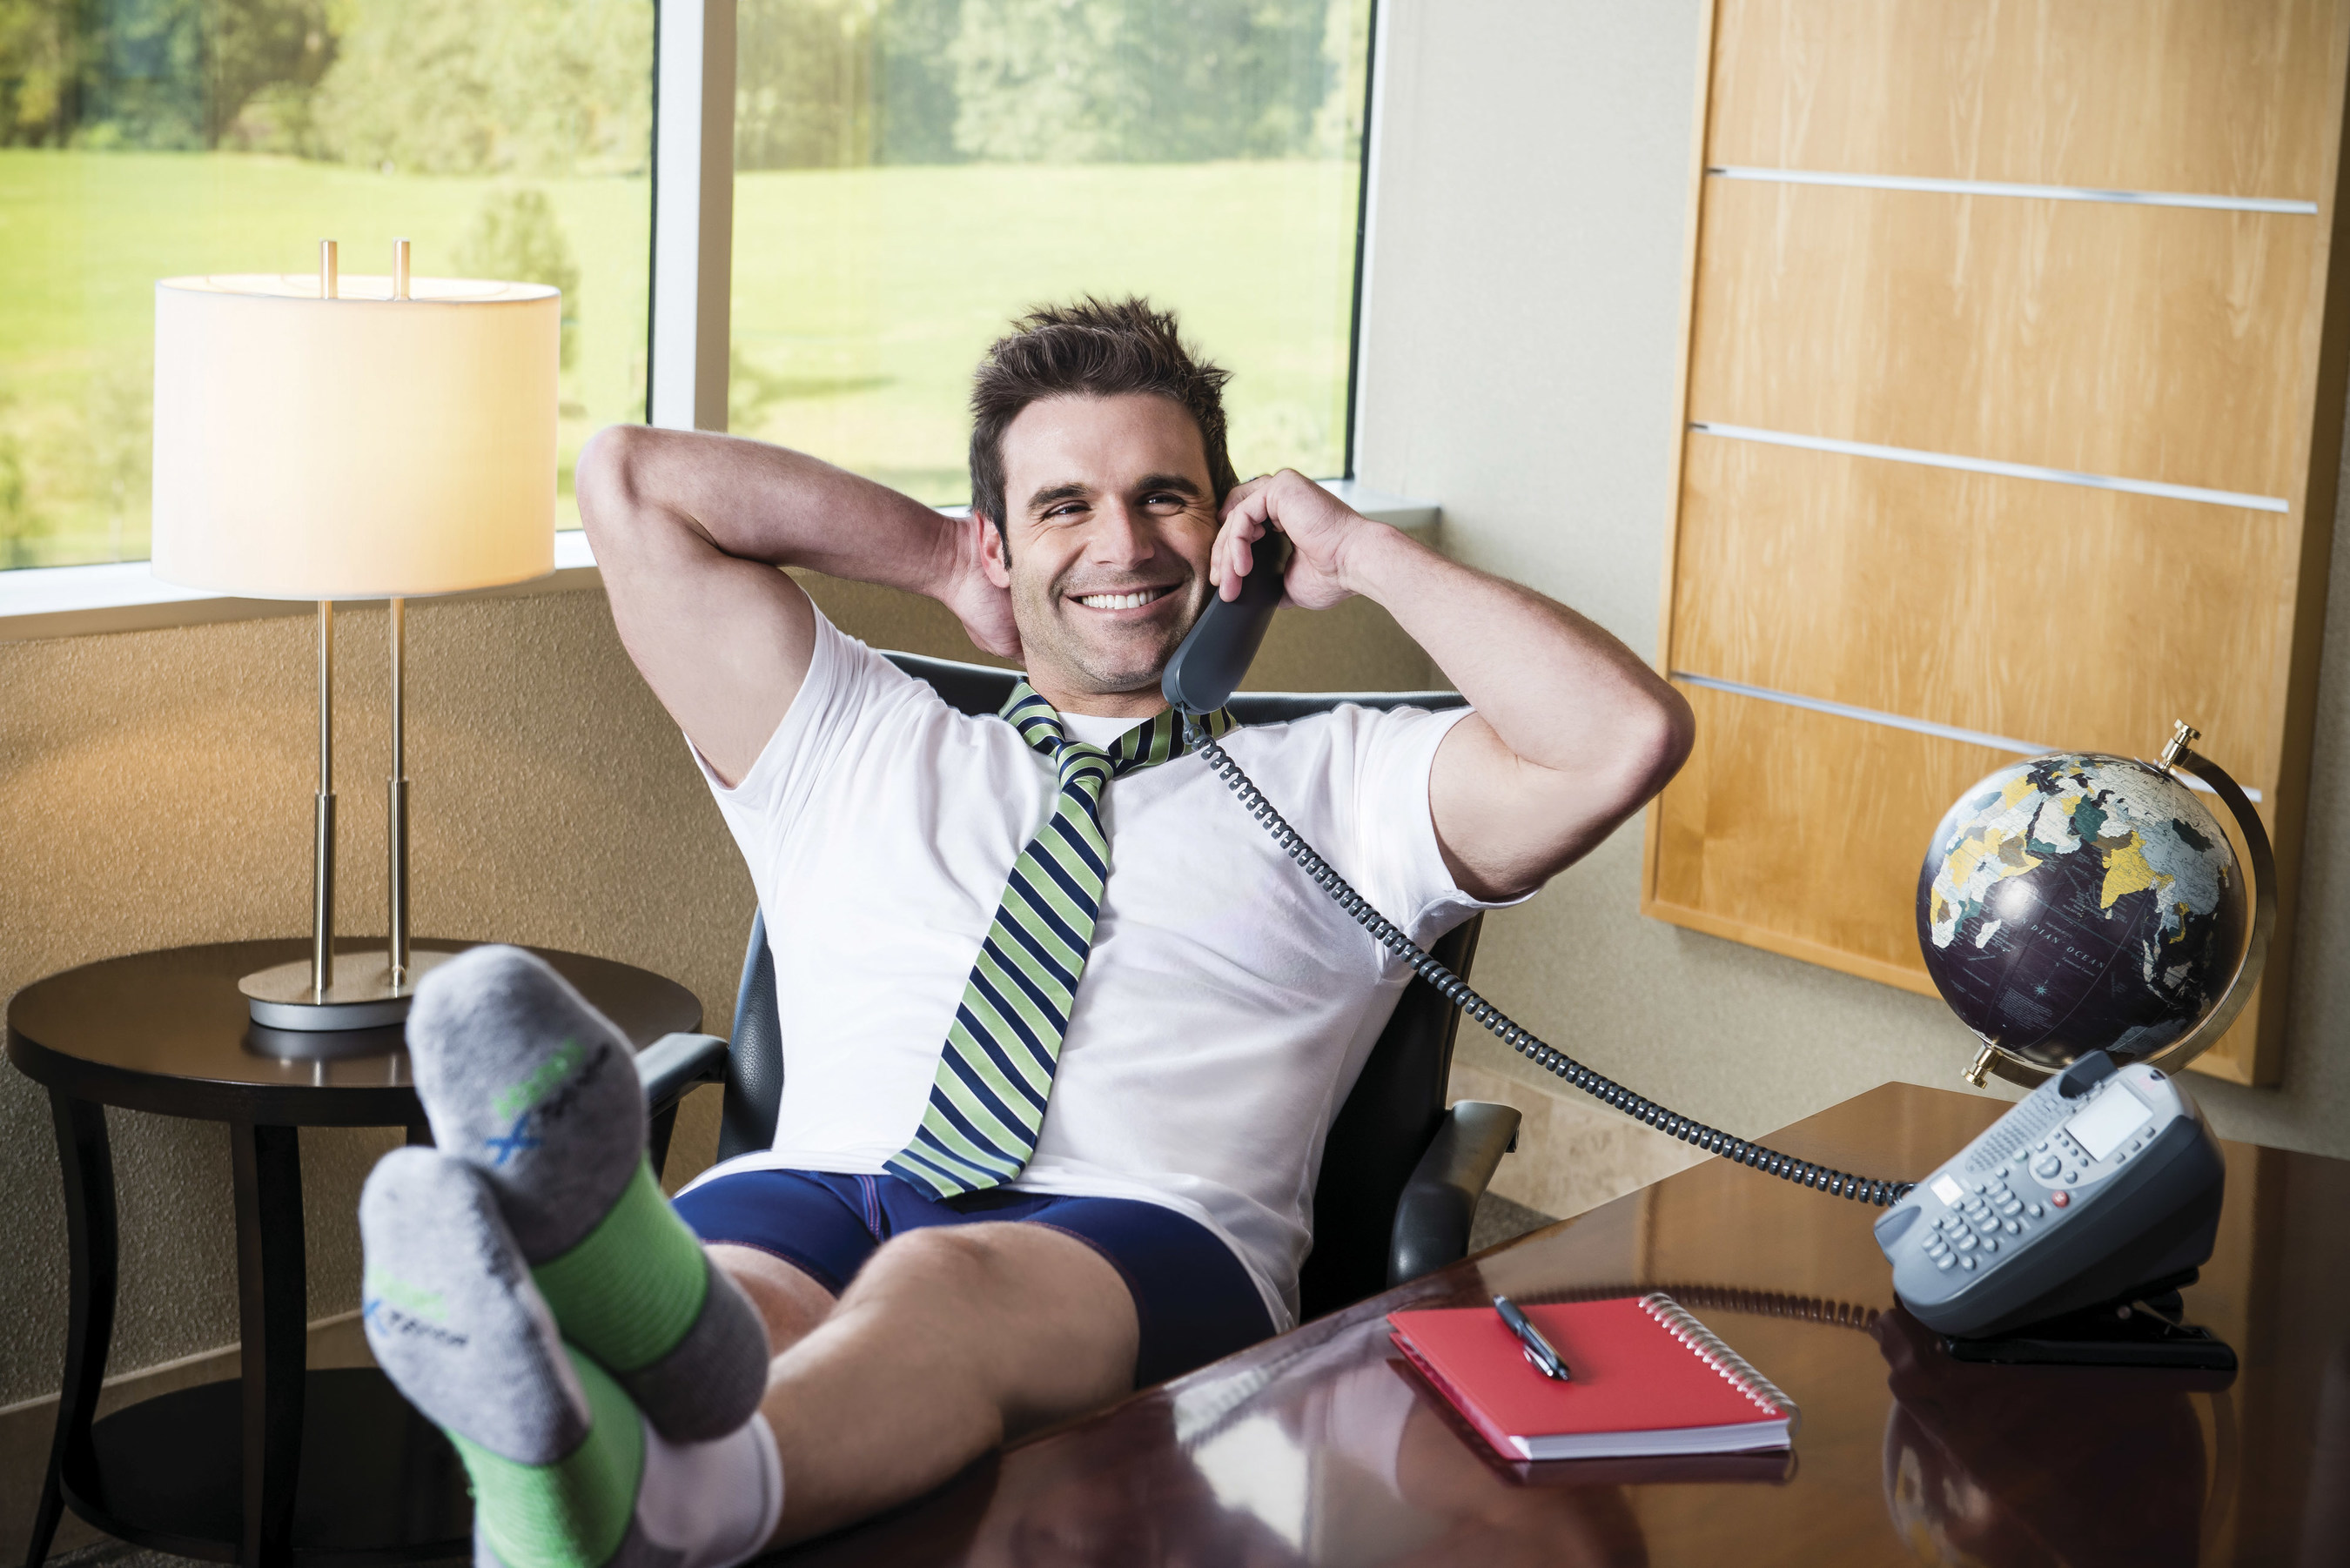 High-Tech Clothing Helps Overcome High Stress